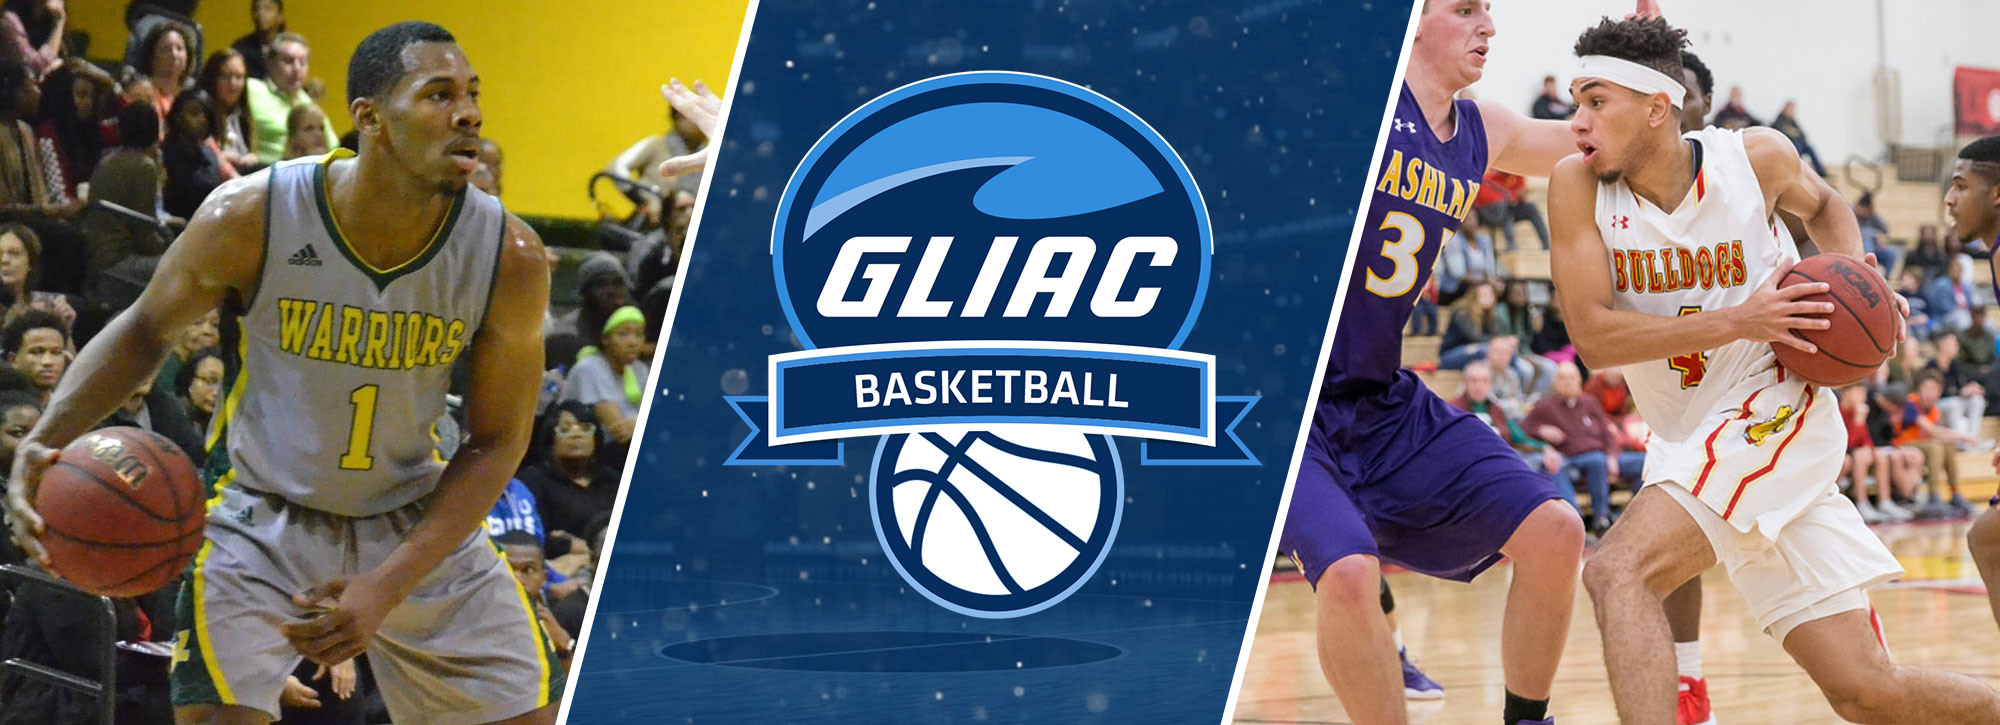 Home Teams 5-1 in #GLIACMBB Thursday Night Action